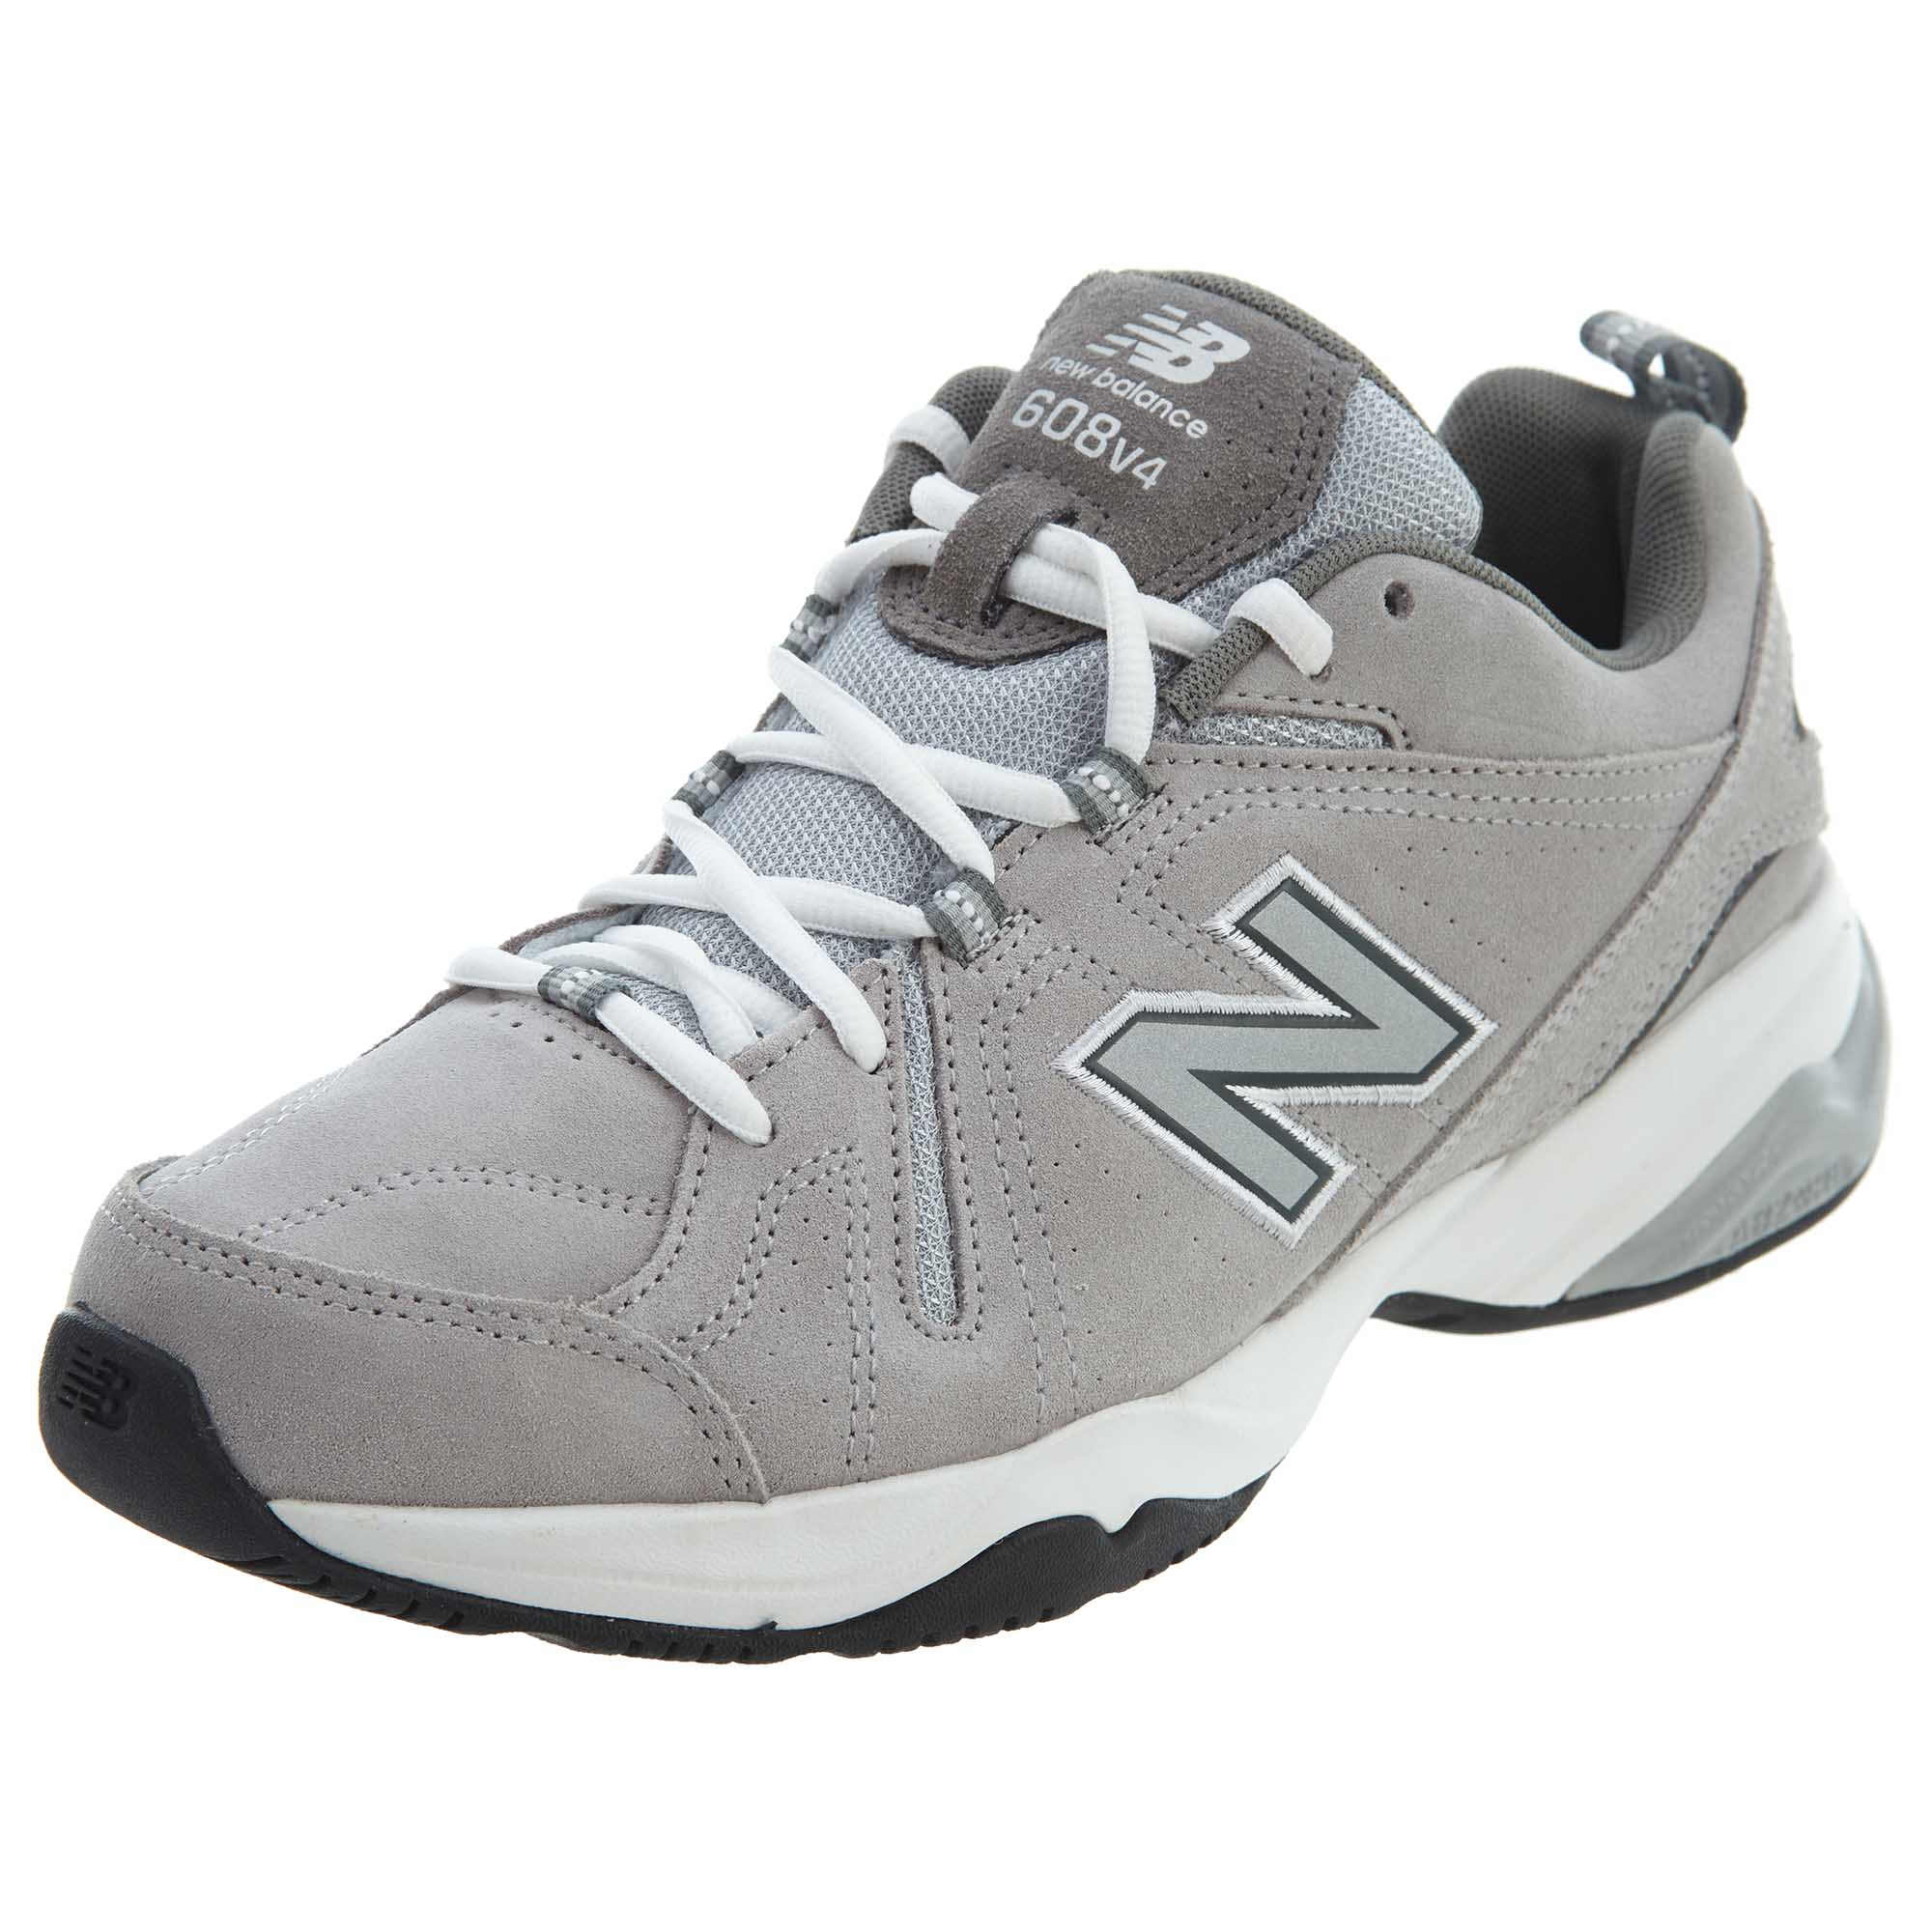 520577ab8dac Details about New Balance Mens 608 Training Shoes Grey MX608-V4G